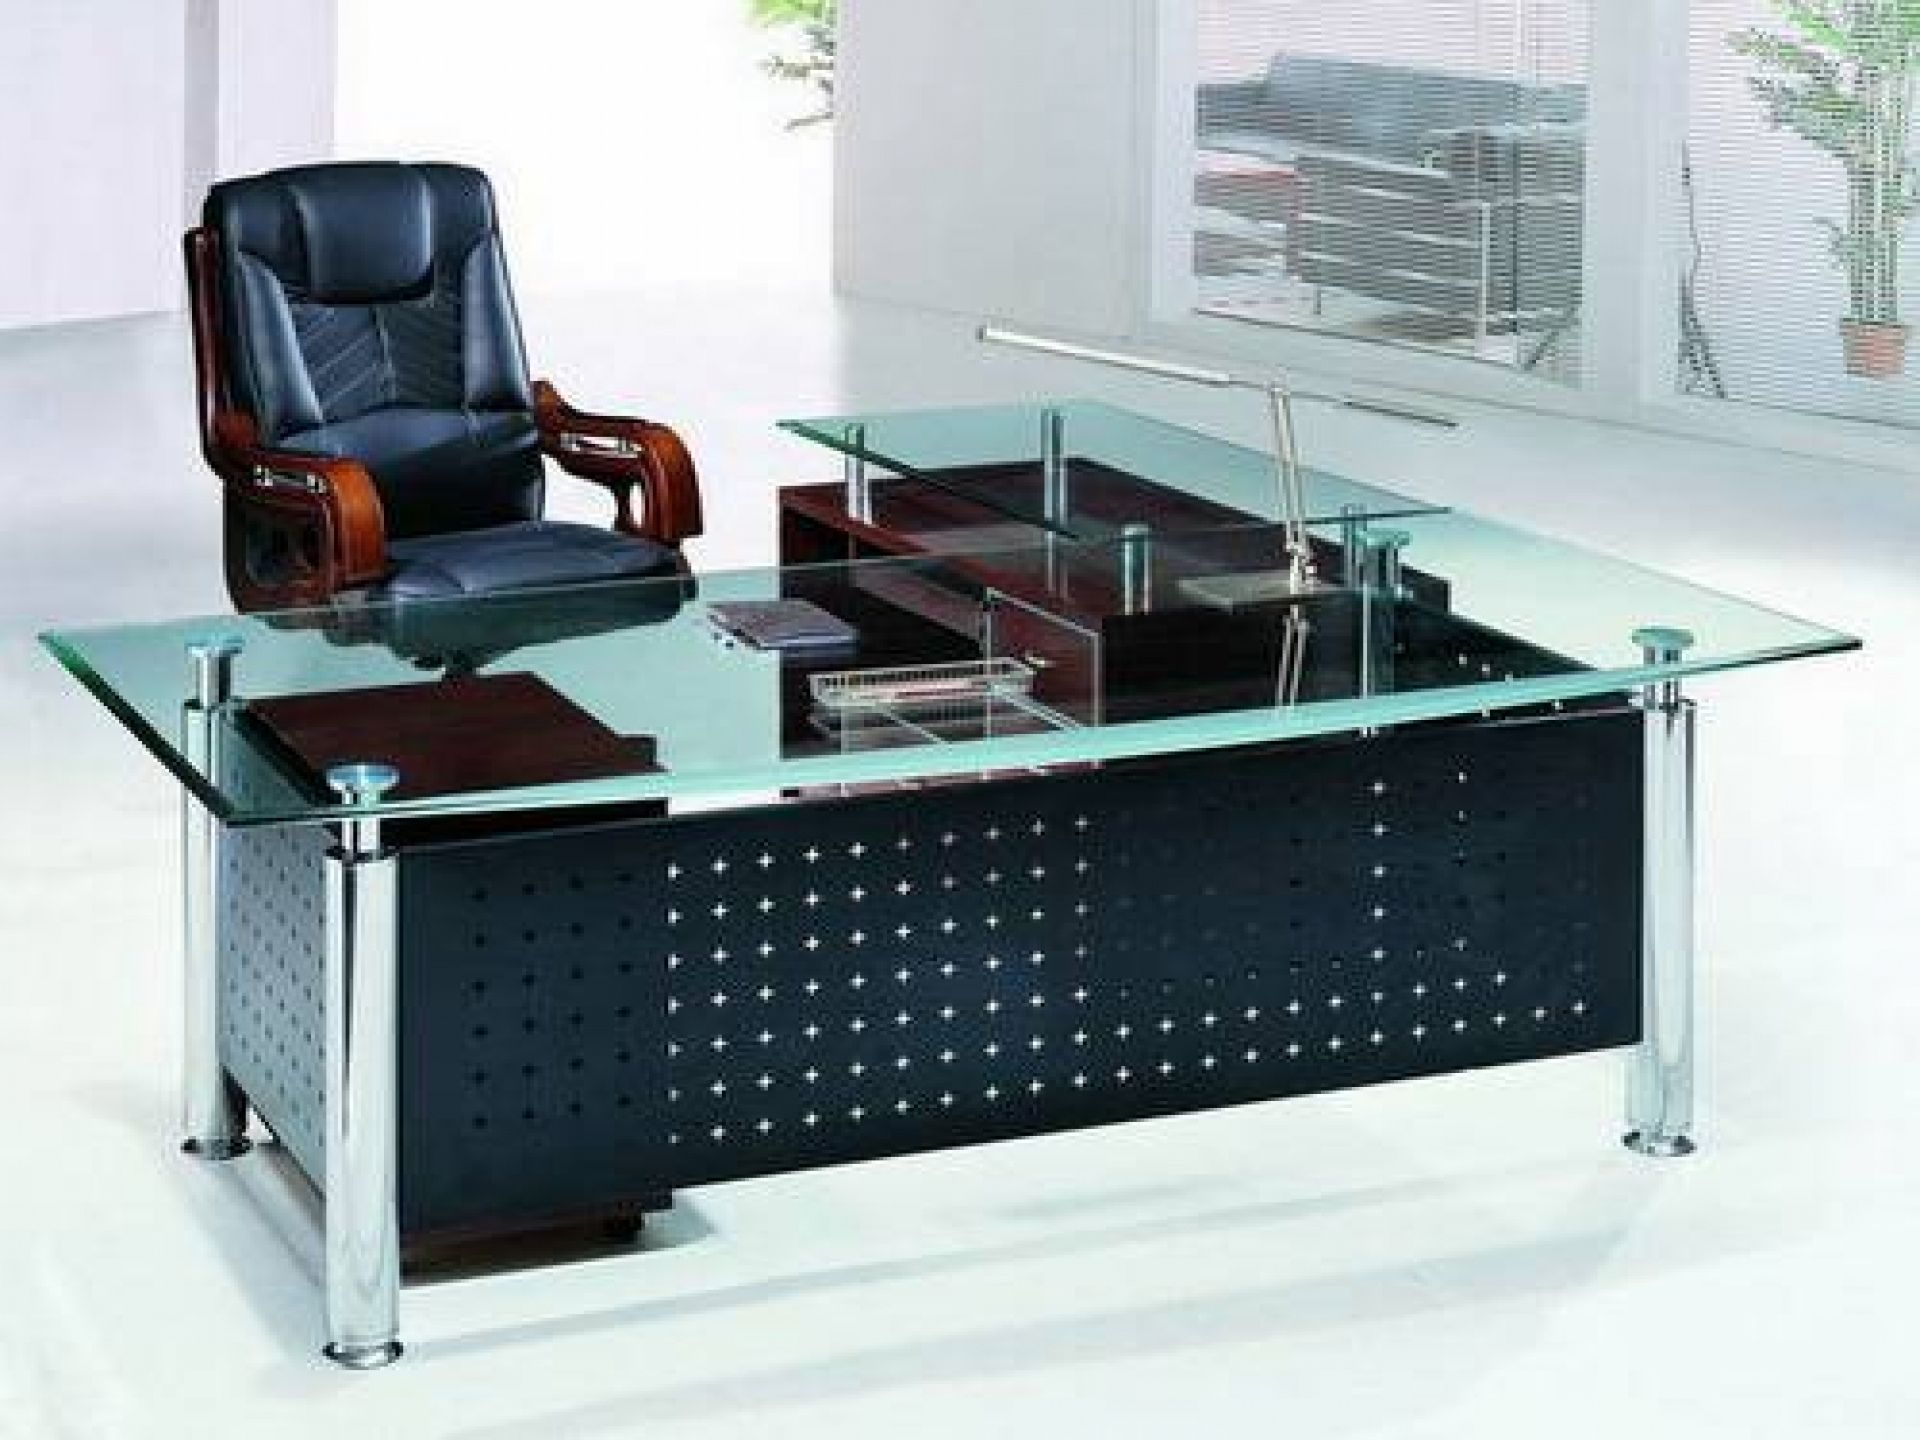 Etonnant Glass Top Office Desk For Sale   Best Office Desk Chair Check More At  Http://www.sewcraftyjenn.com/glass Top Office Desk For Sale/